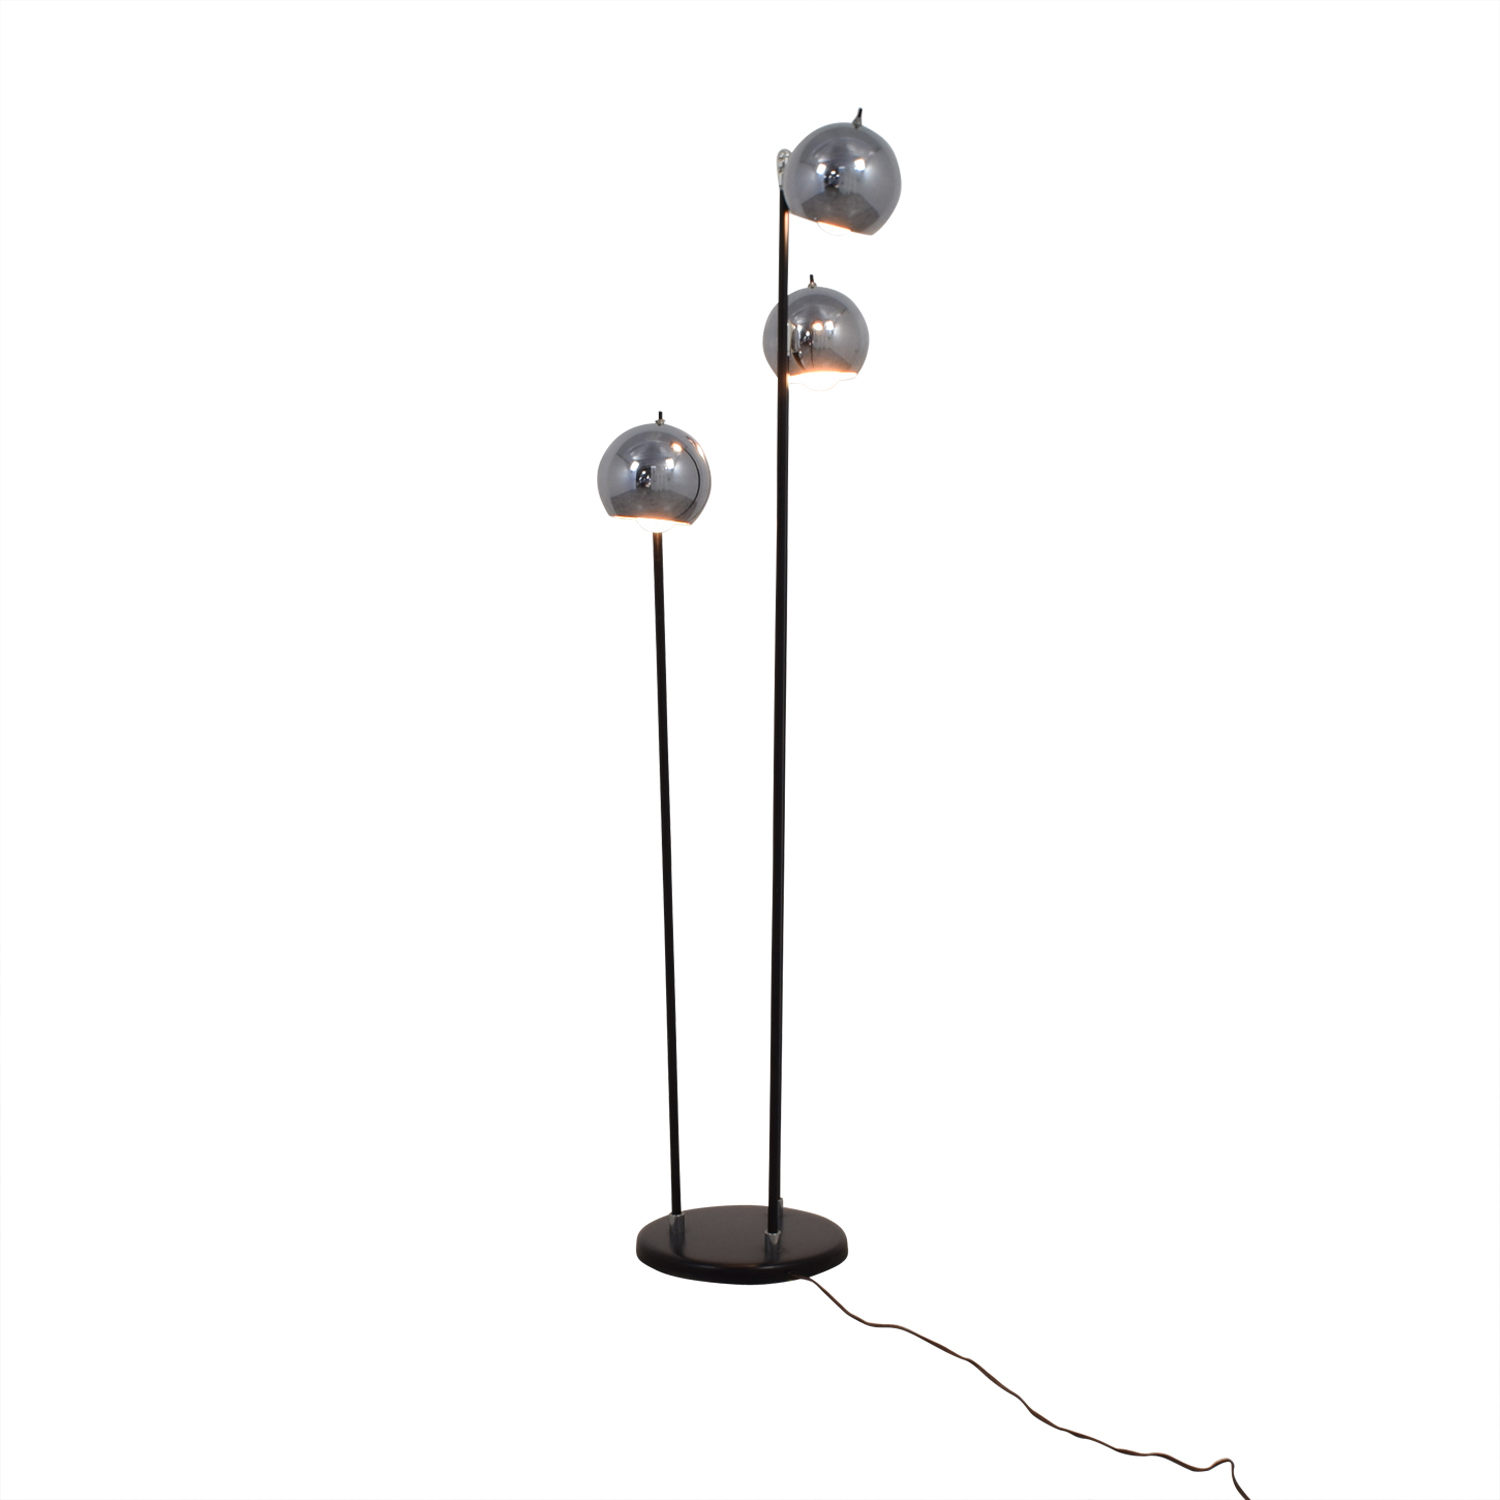 Modern Floor Lamp with Three Rounded Chrome Shades / Decor